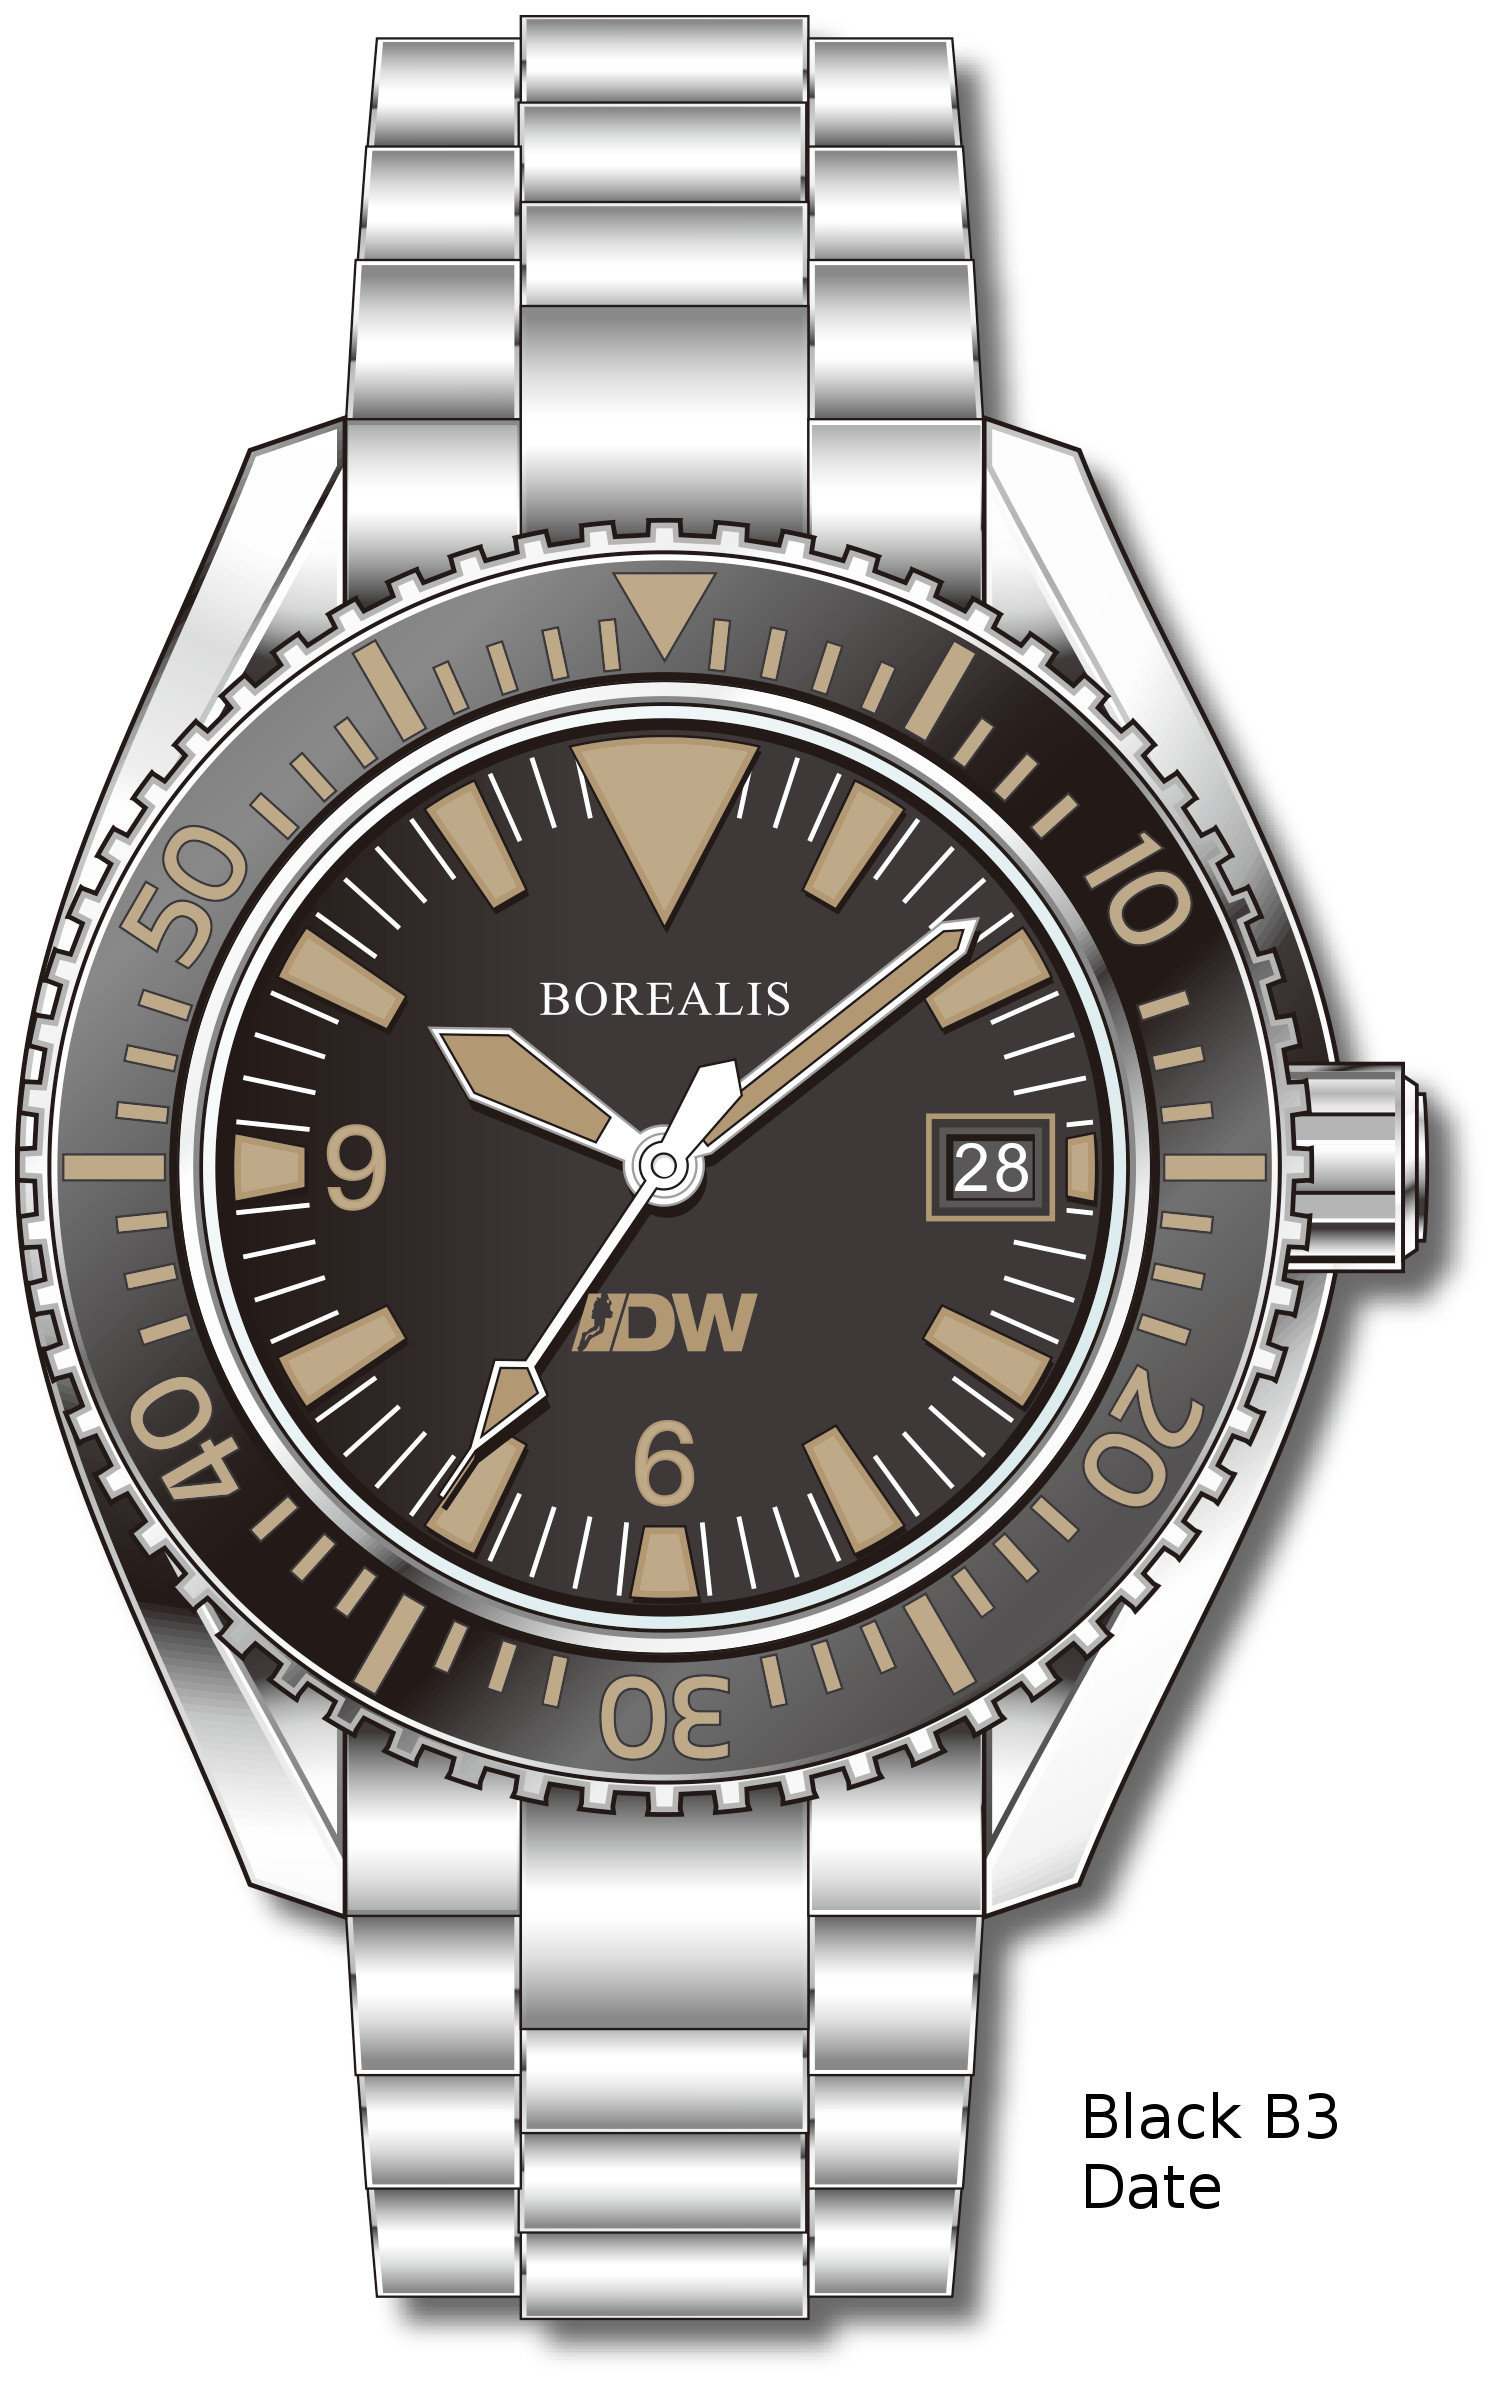 Pre-Order Borealis Estoril 300 for Diver's Watches Facebook Group Black Dial Big Triangle Date Black B3 Date